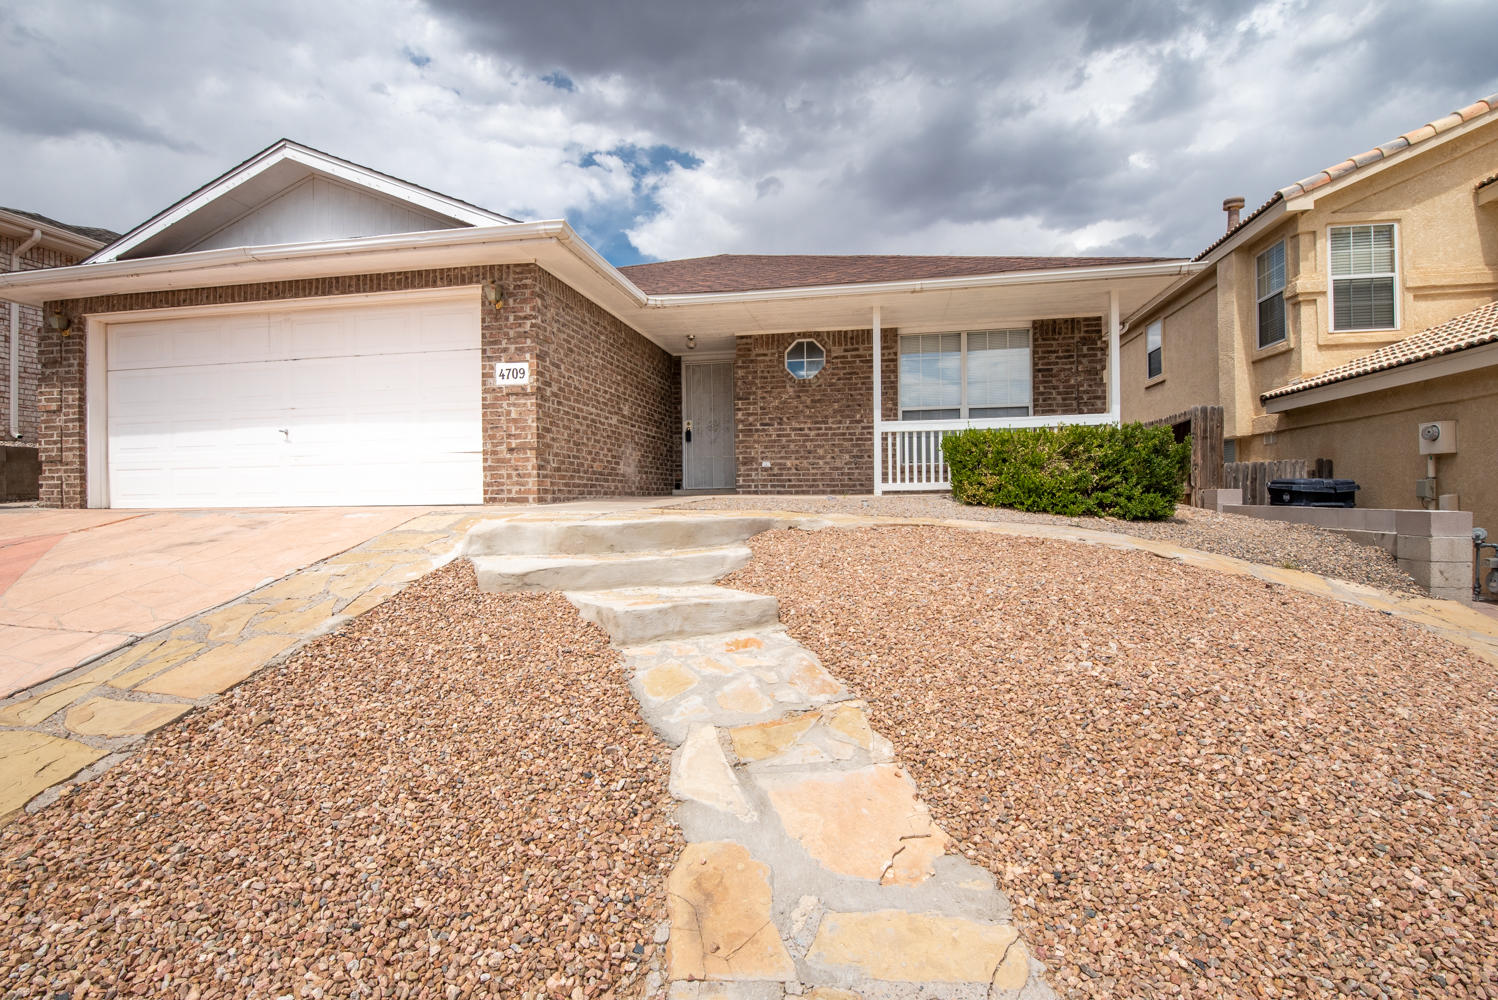 Under Contract Taking Backup OffersMust see! Well cared for home from the popular builder, Opel Jenkins, with a great location near Paseo Del Norte. Sought after neighborhood. The home boasts granite counter tops, a remodeled bathroom, new carpet and paint. This wont last long!